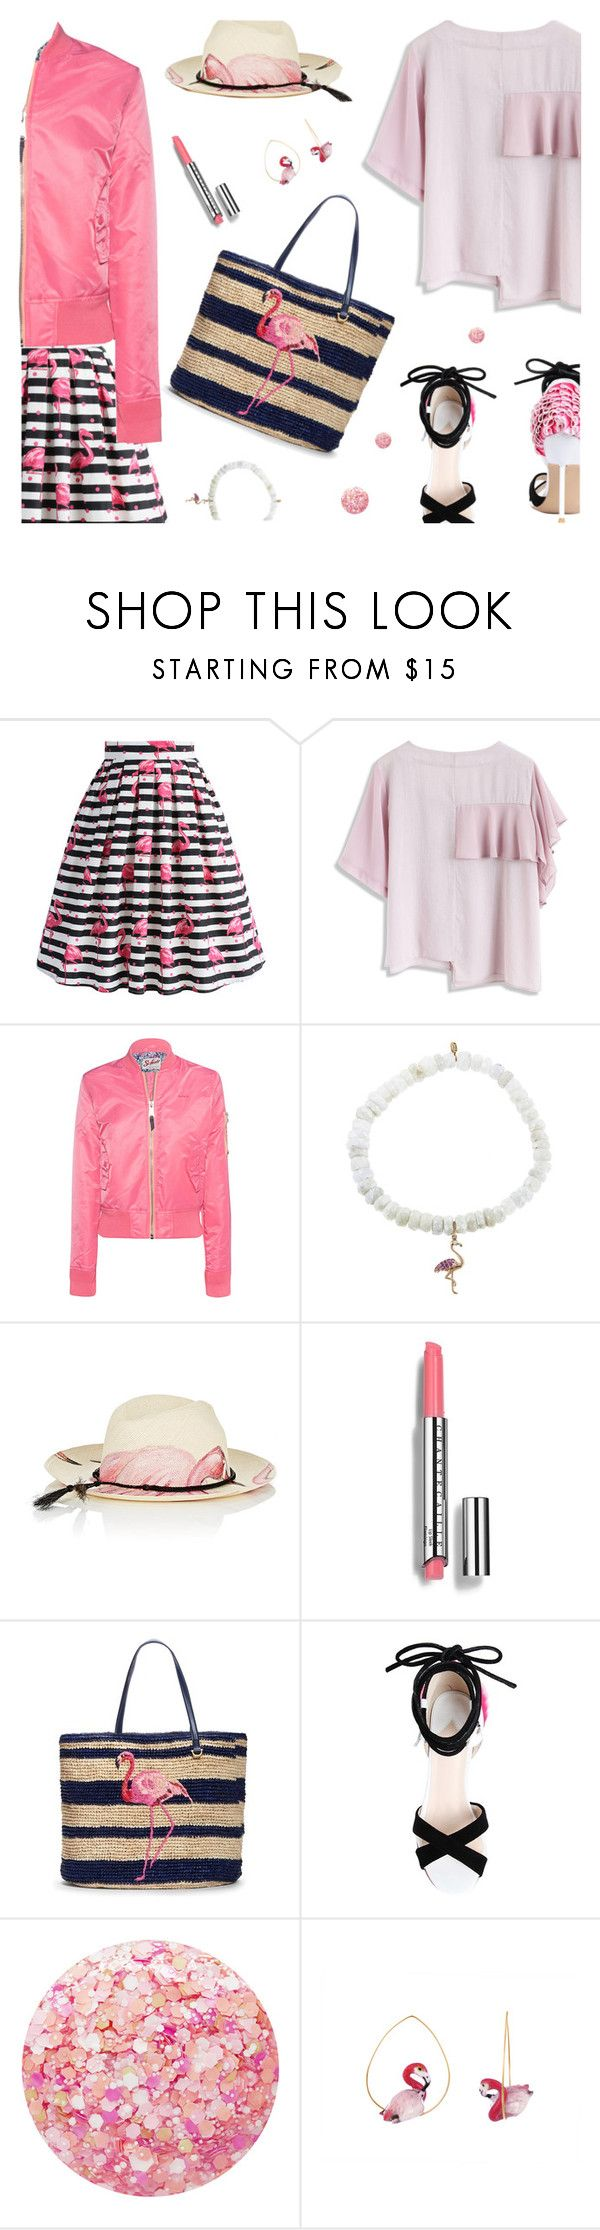 """""""Flamingo Style"""" by annbaker ❤ liked on Polyvore featuring Chicwish, Schott NYC, Sydney Evan, Ibo-Maraca, Chantecaille, Draper James, Nails Inc. and Nach Bijoux"""